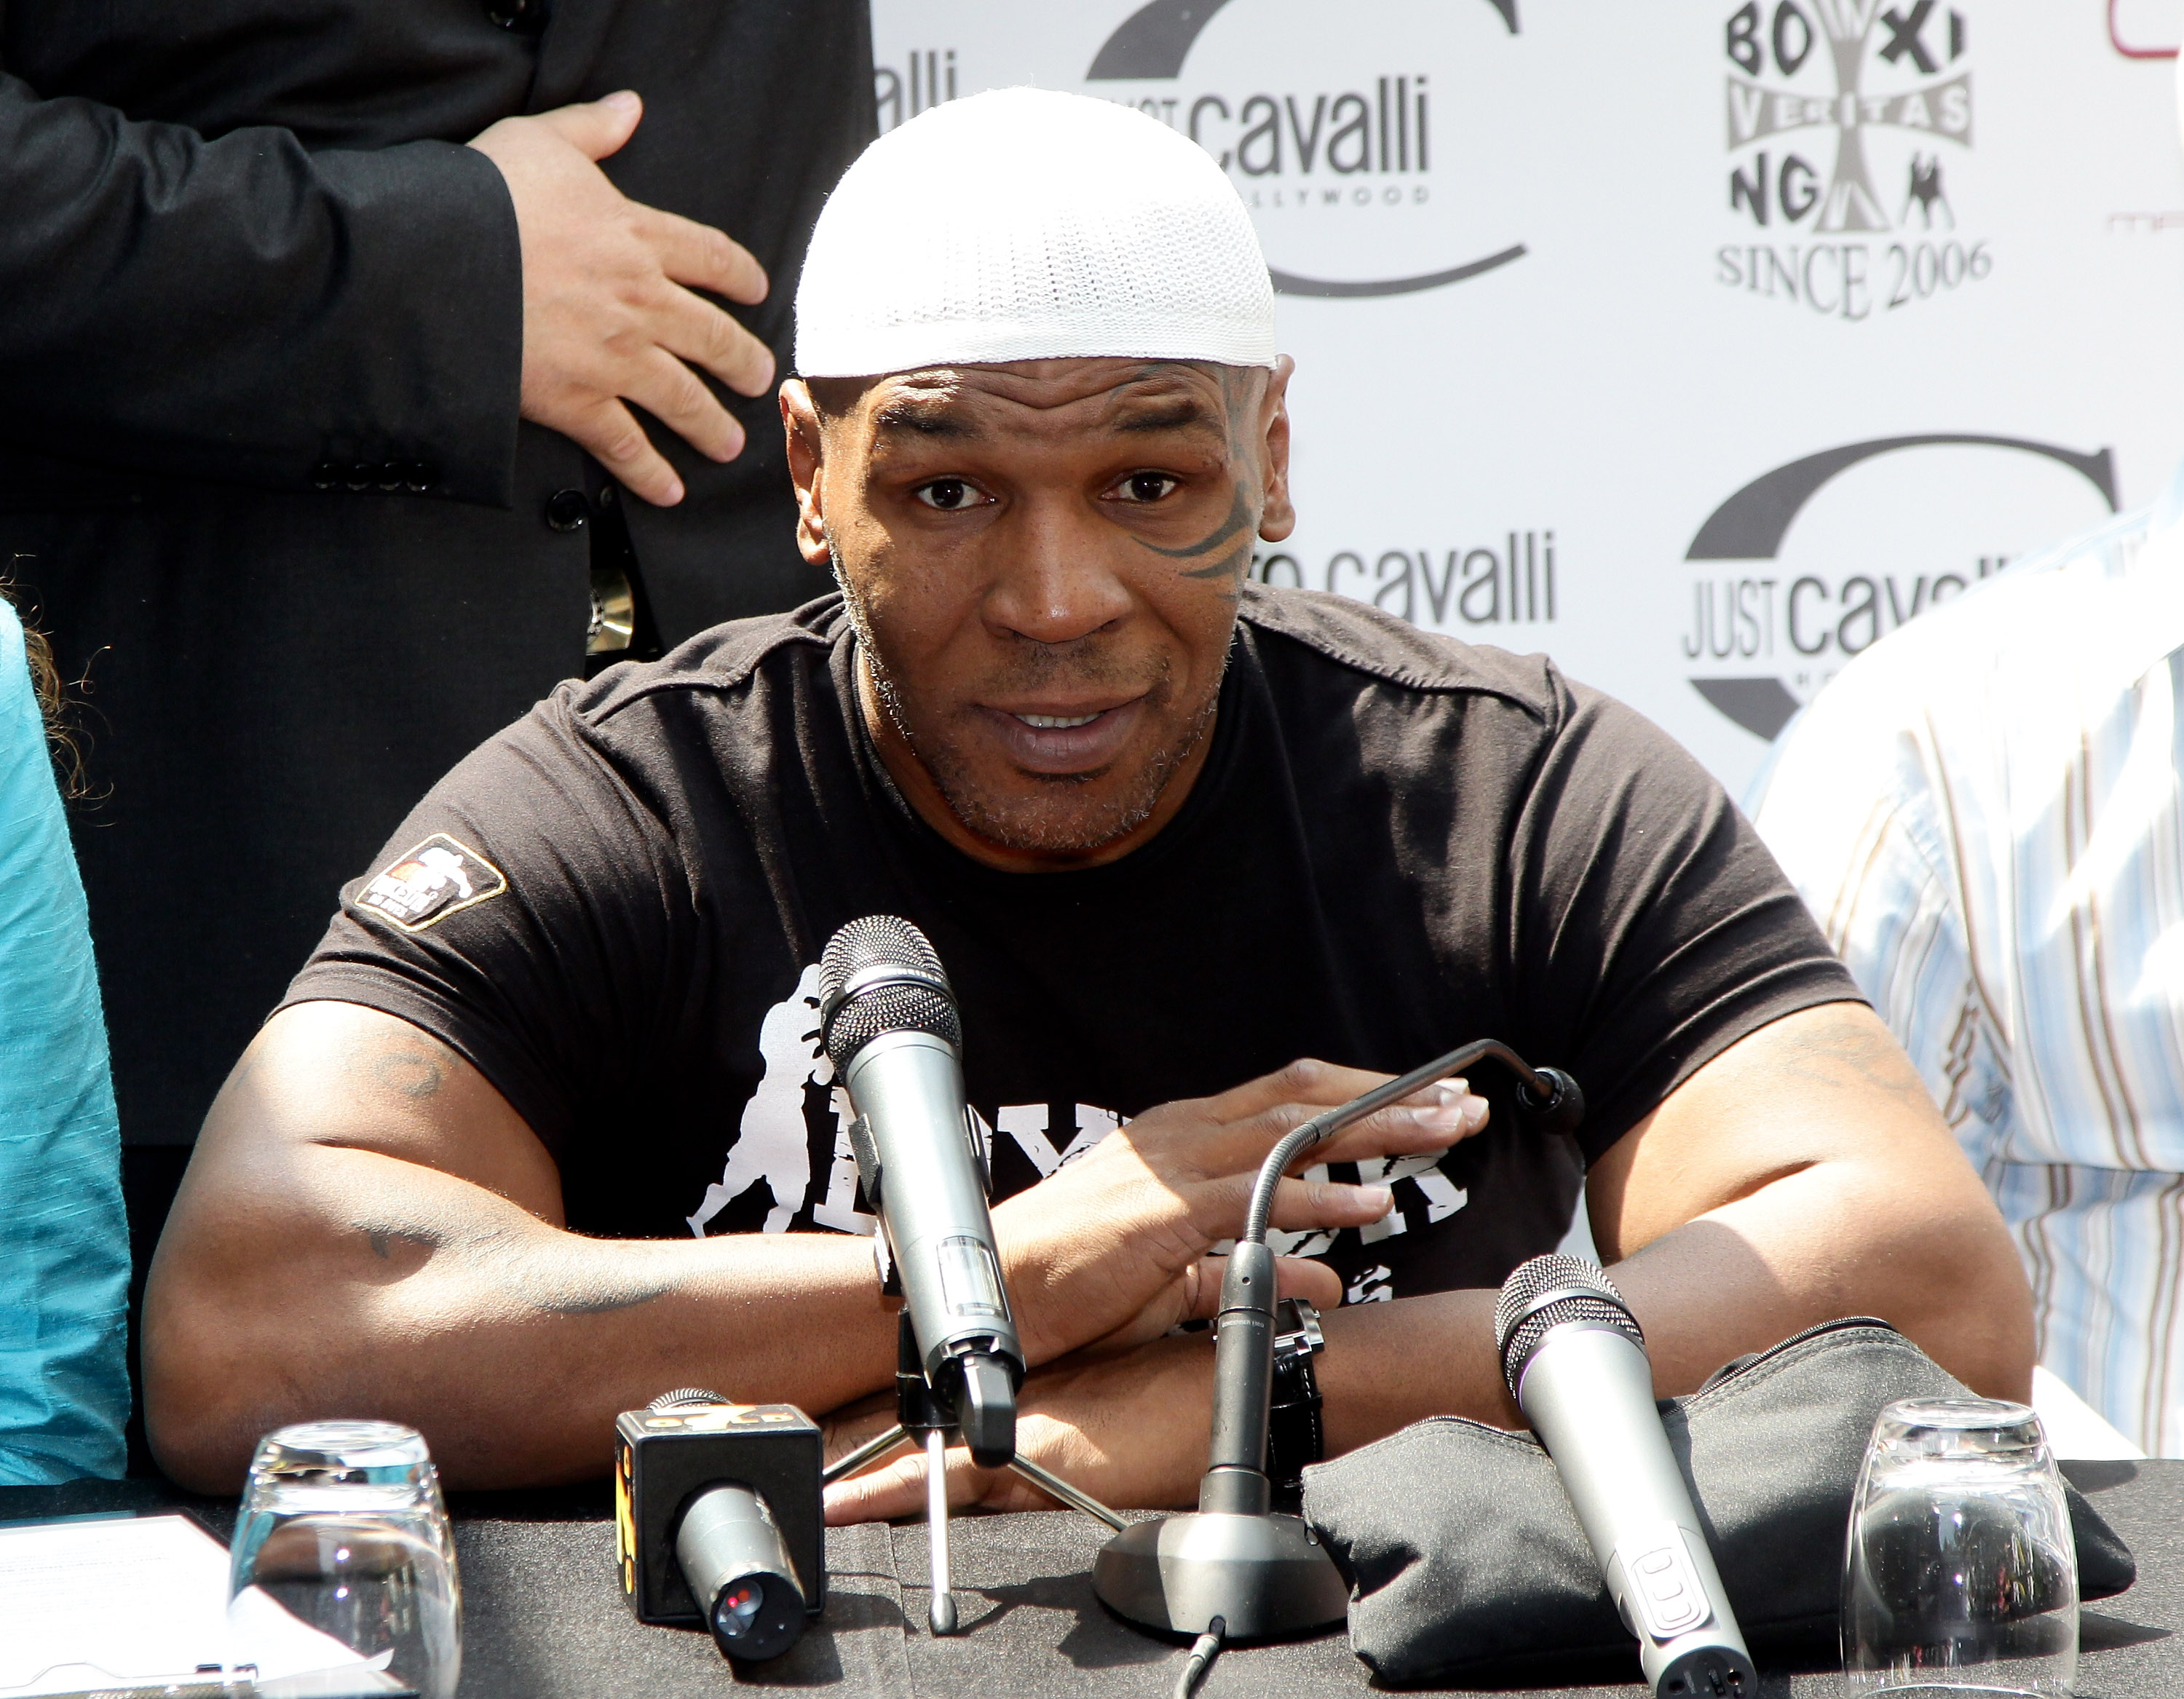 MILAN, ITALY - JULY 09:  Mike Tyson attends a press conference held at Just Cavalli Cafe on July 9, 2010 in Milan, Italy.  (Photo by Vittorio Zunino Celotto/Getty Images)